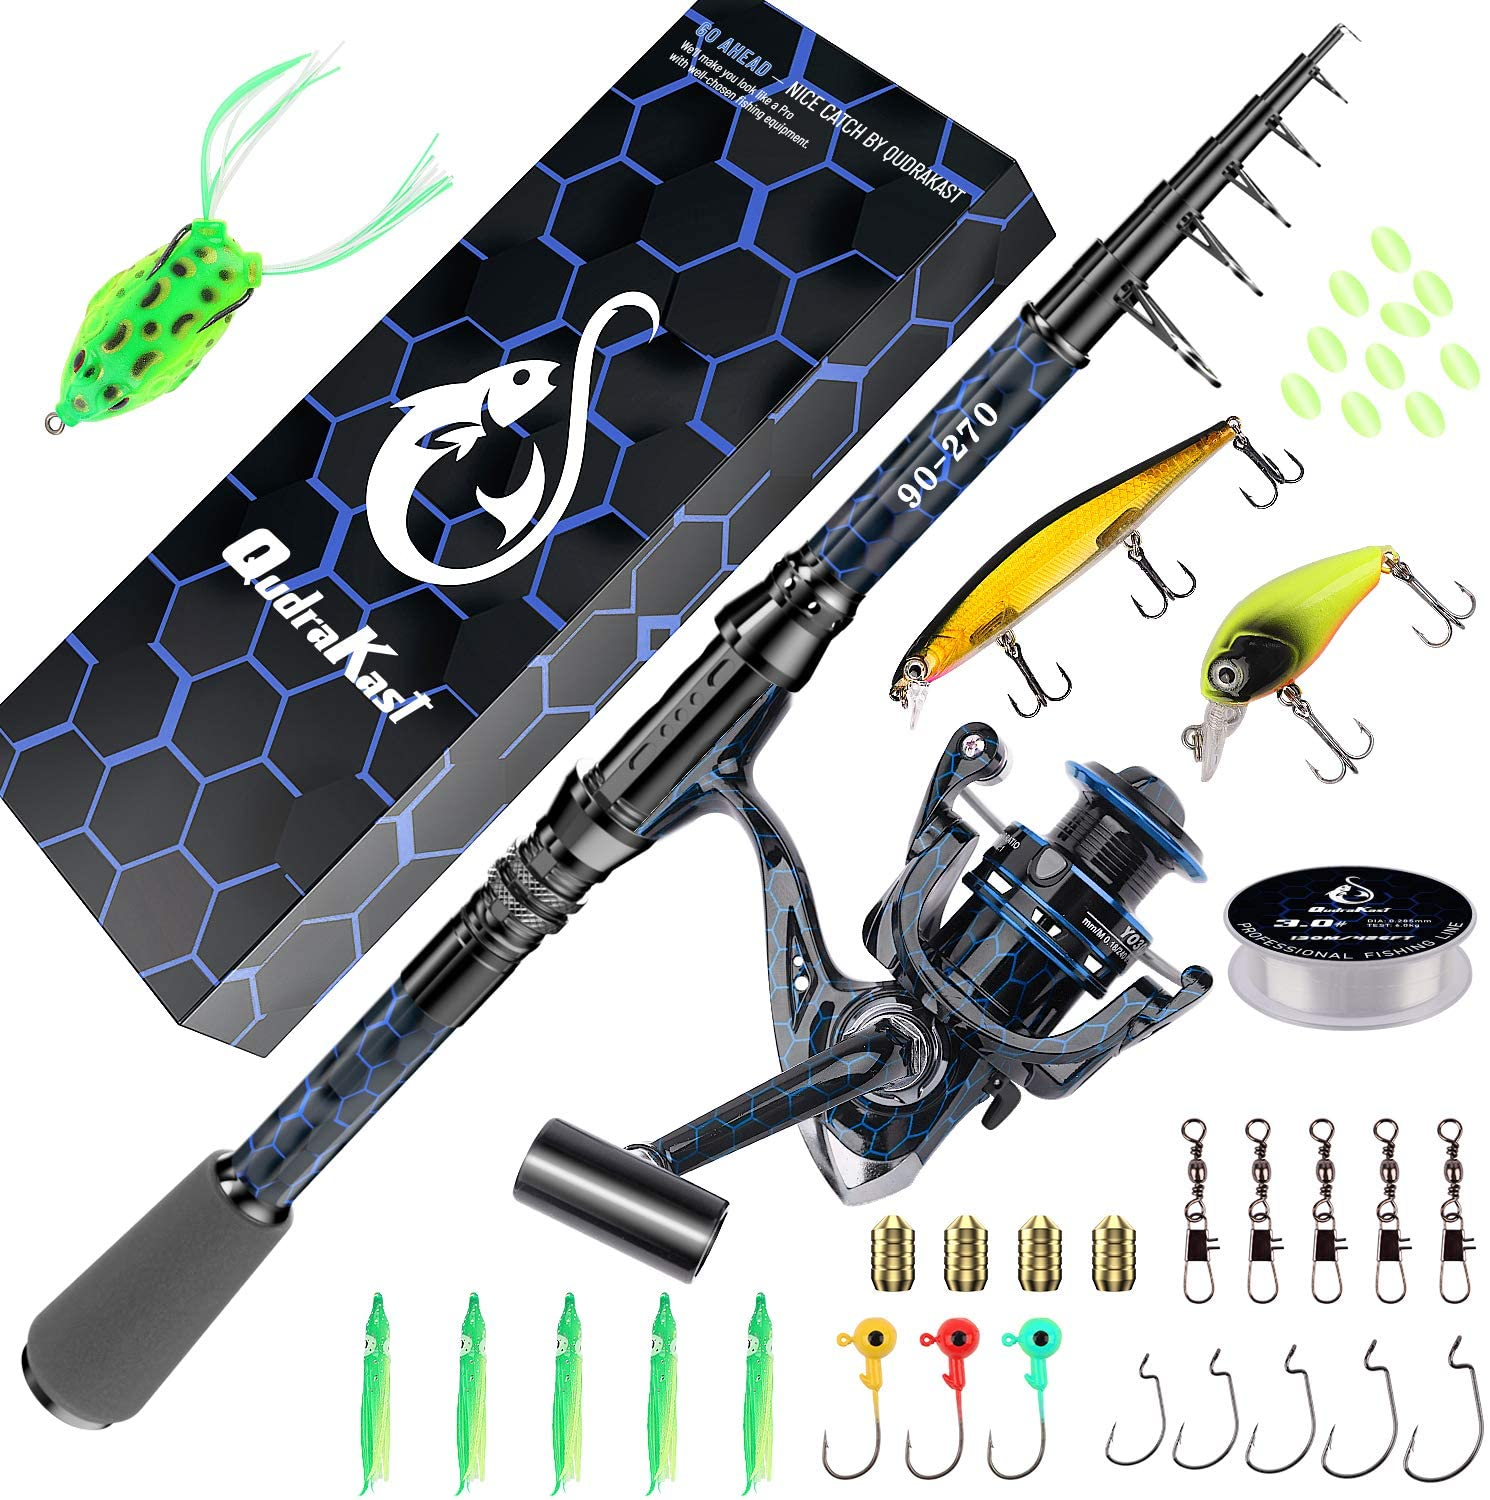 QudraKast Fishing Rod and Reel Combos, Unique Design with X